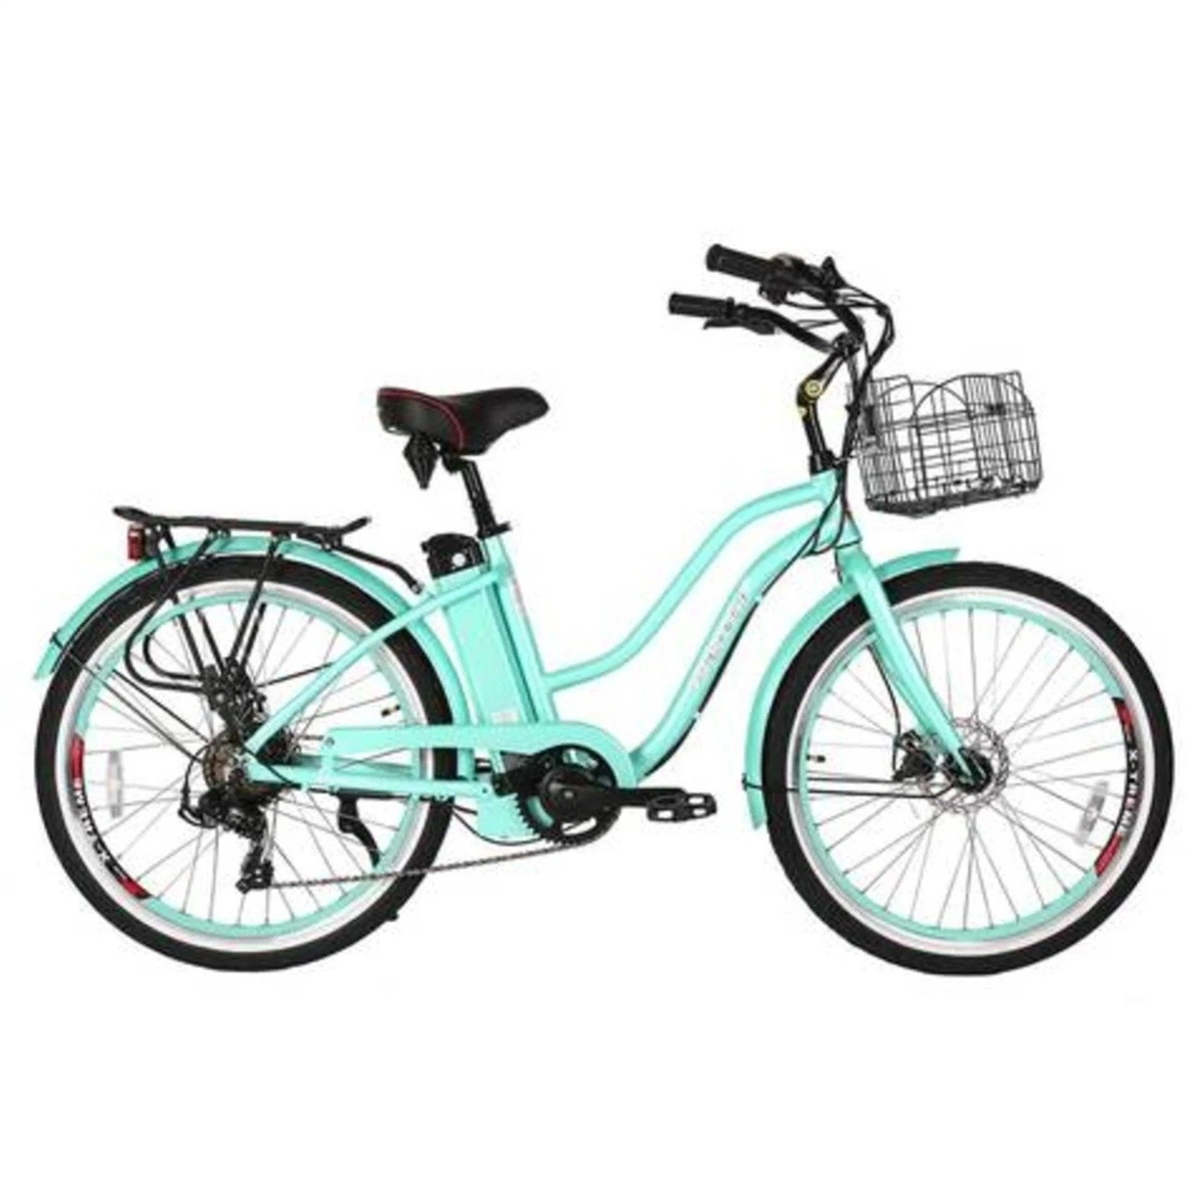 x treme malibu beach cruiser electric bicycle. Black Bedroom Furniture Sets. Home Design Ideas